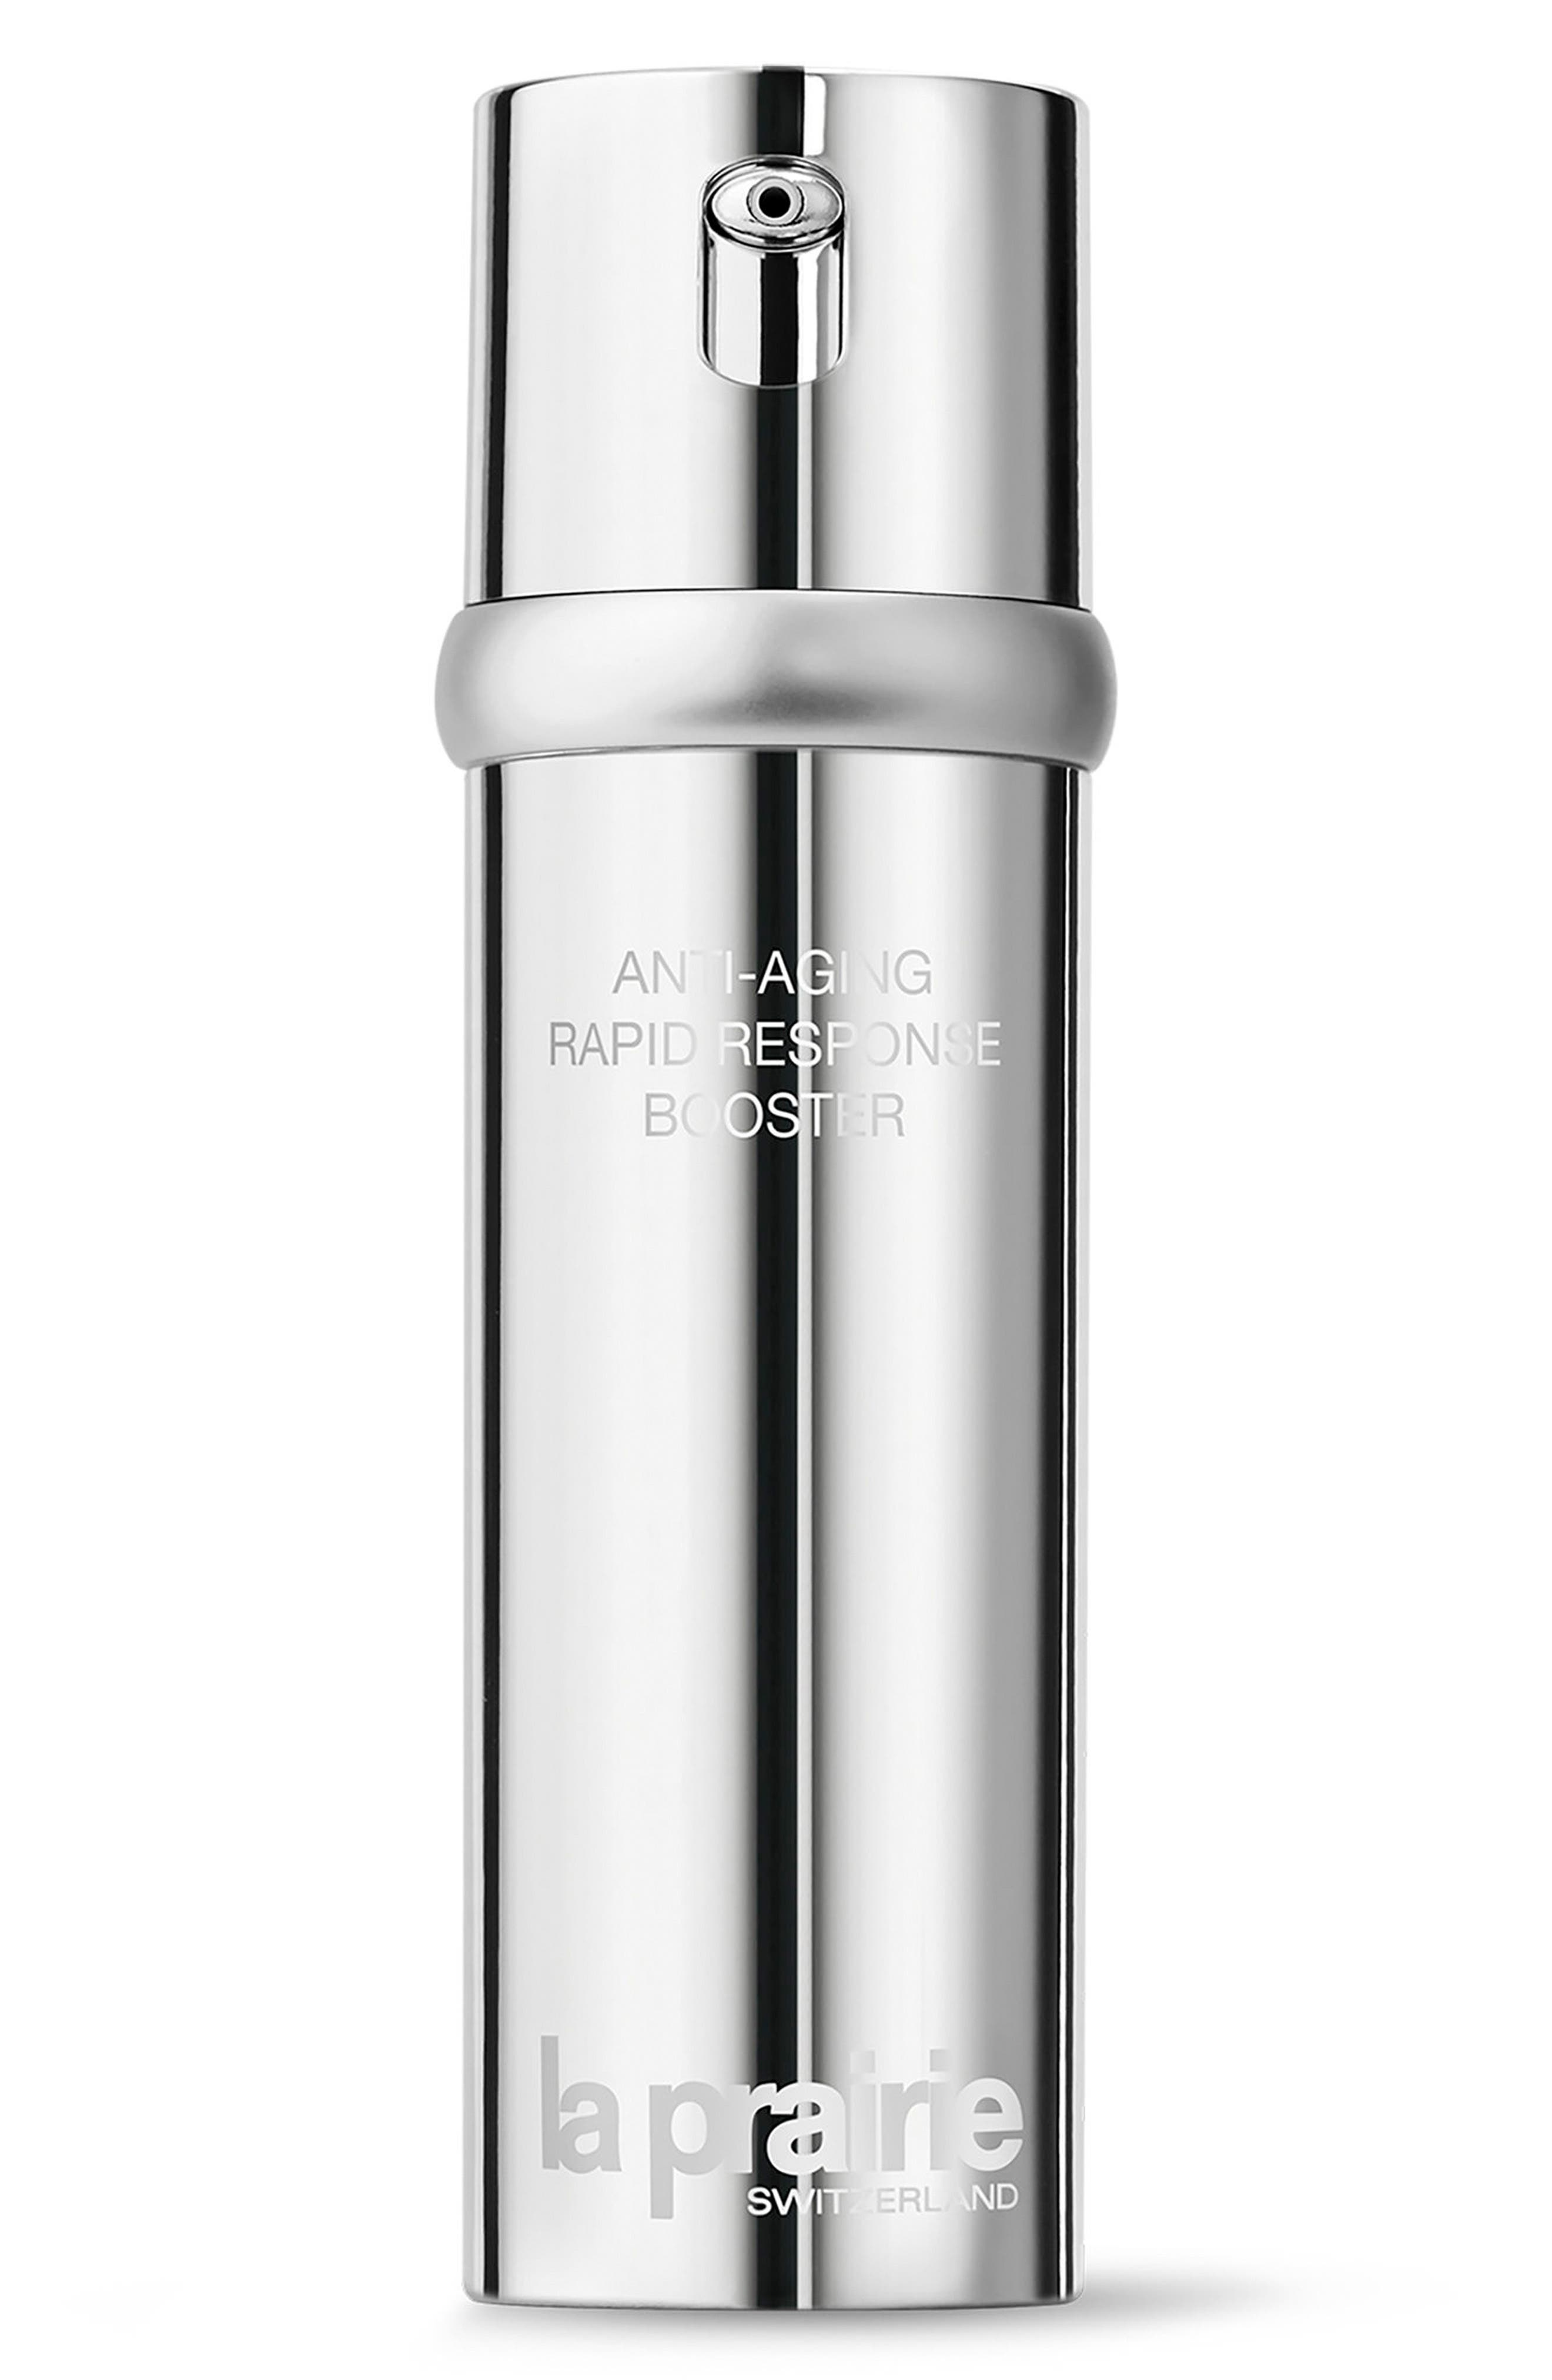 La Prairie Anti-Aging Rapid Response Booster Gel Serum